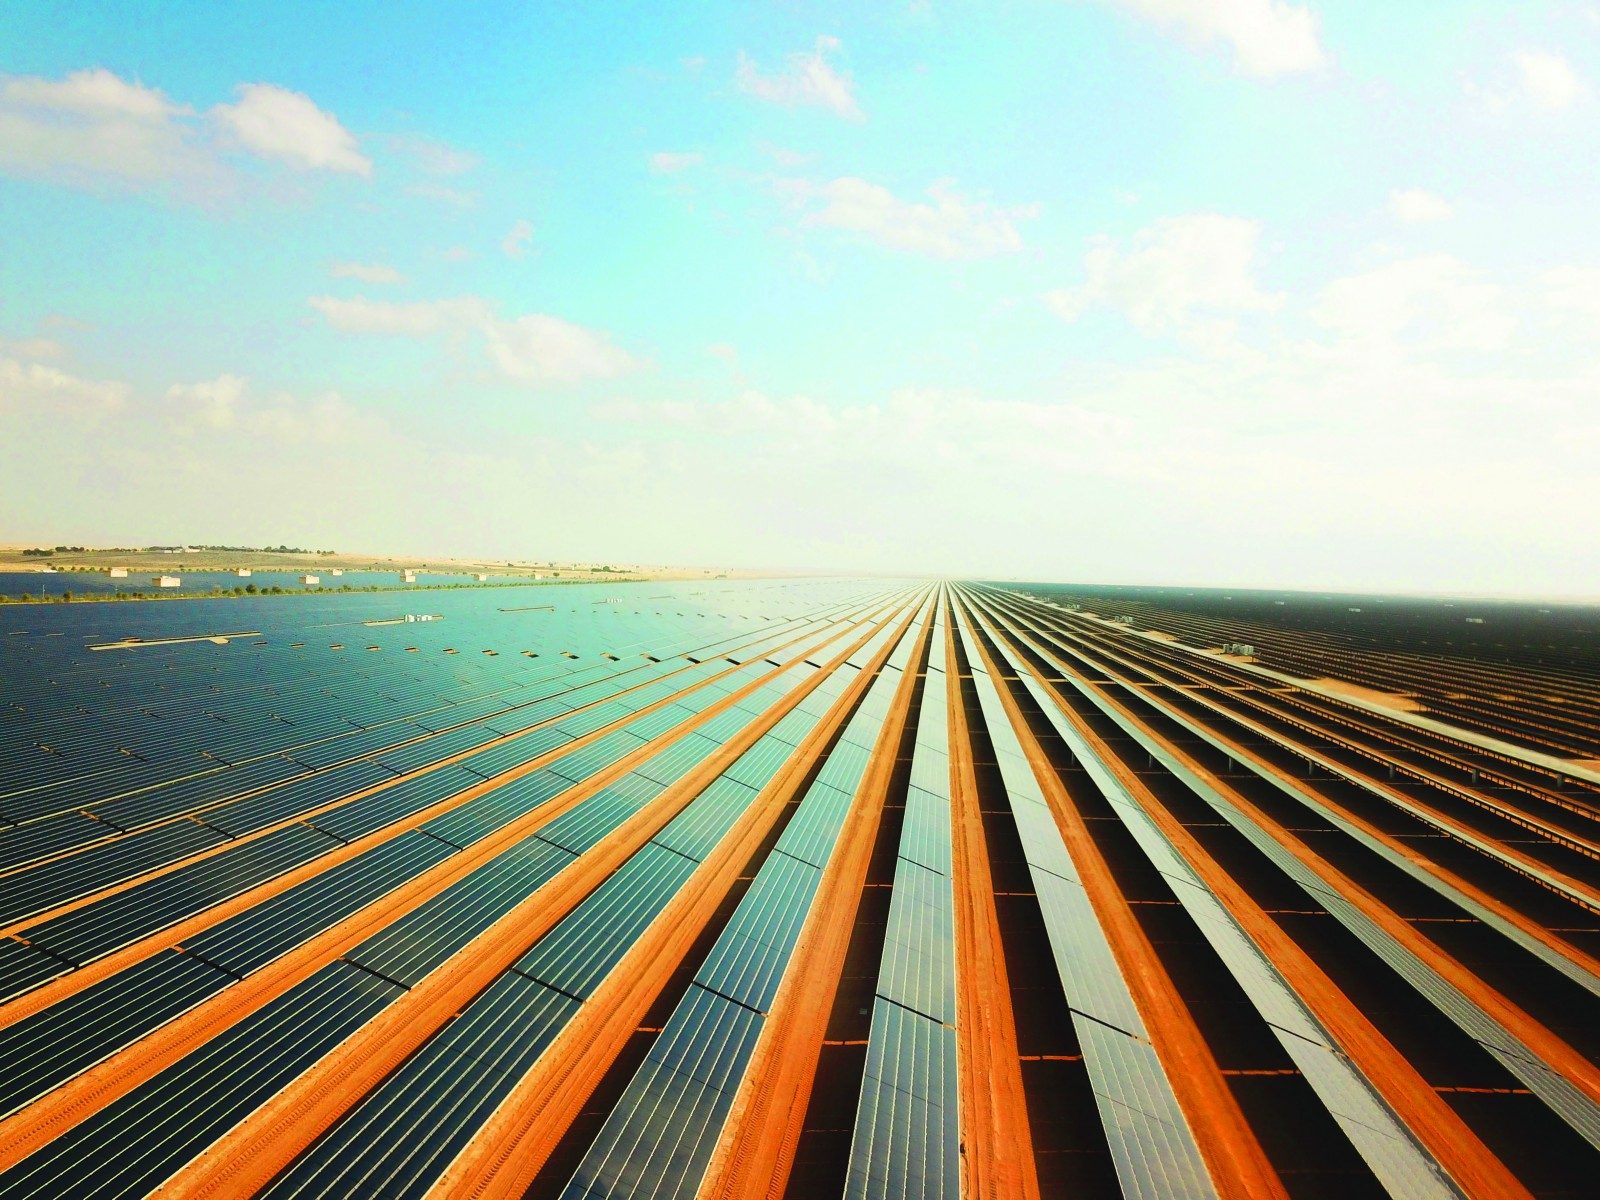 ACWA Power signs final agreements for 200MW PV project in Egypt